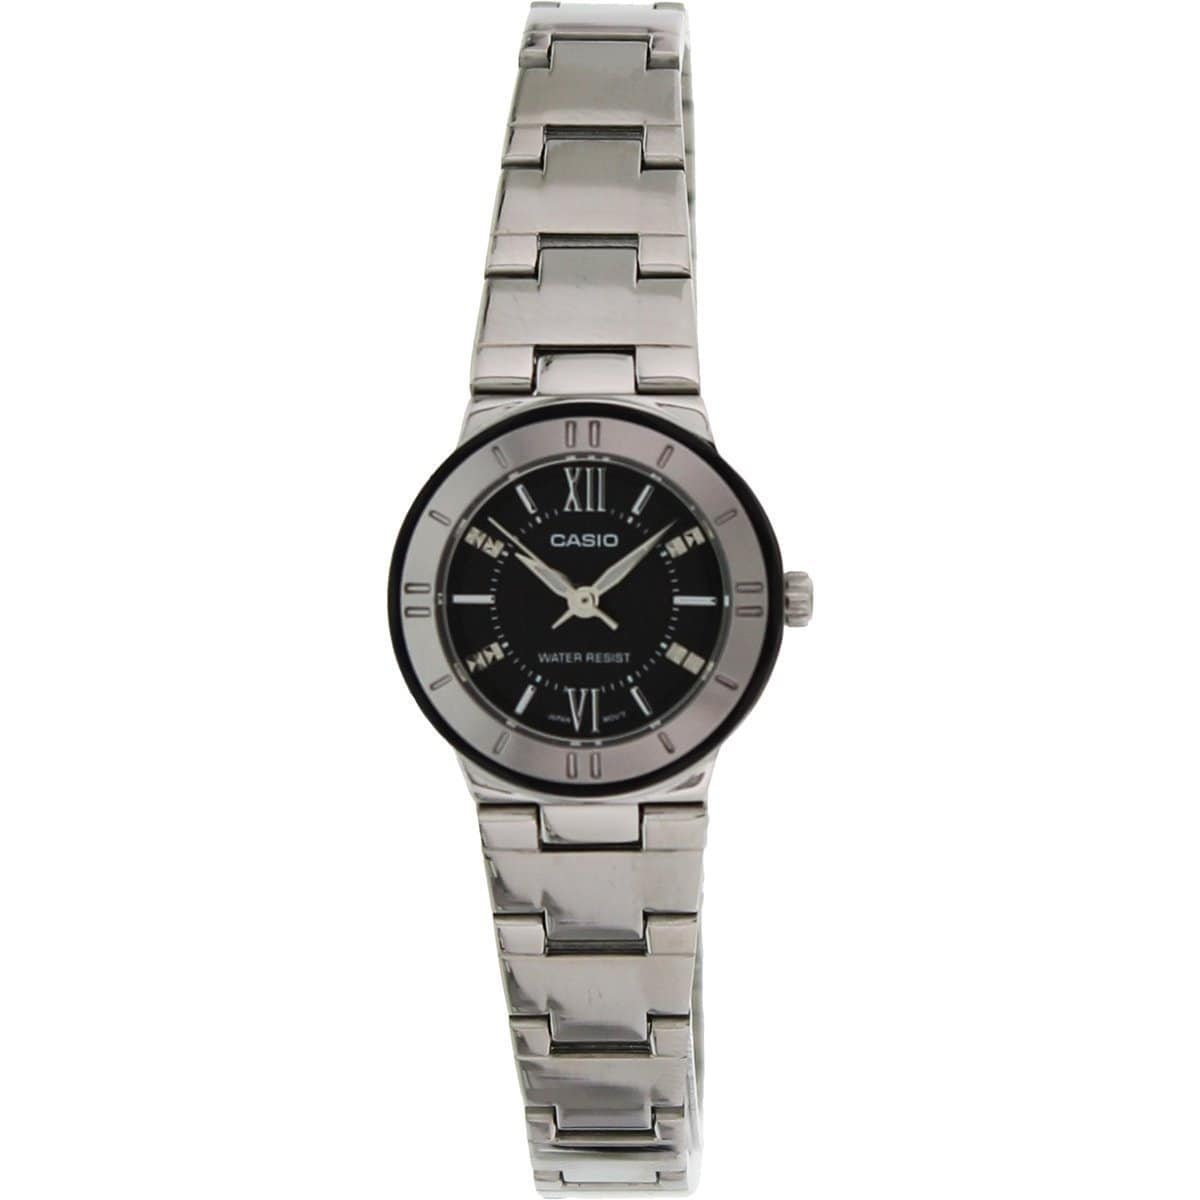 Casio Women's Core LTP1368D-1A1 Silvertone Stainless Steel Quartz Watch with Black Dial at Sears.com